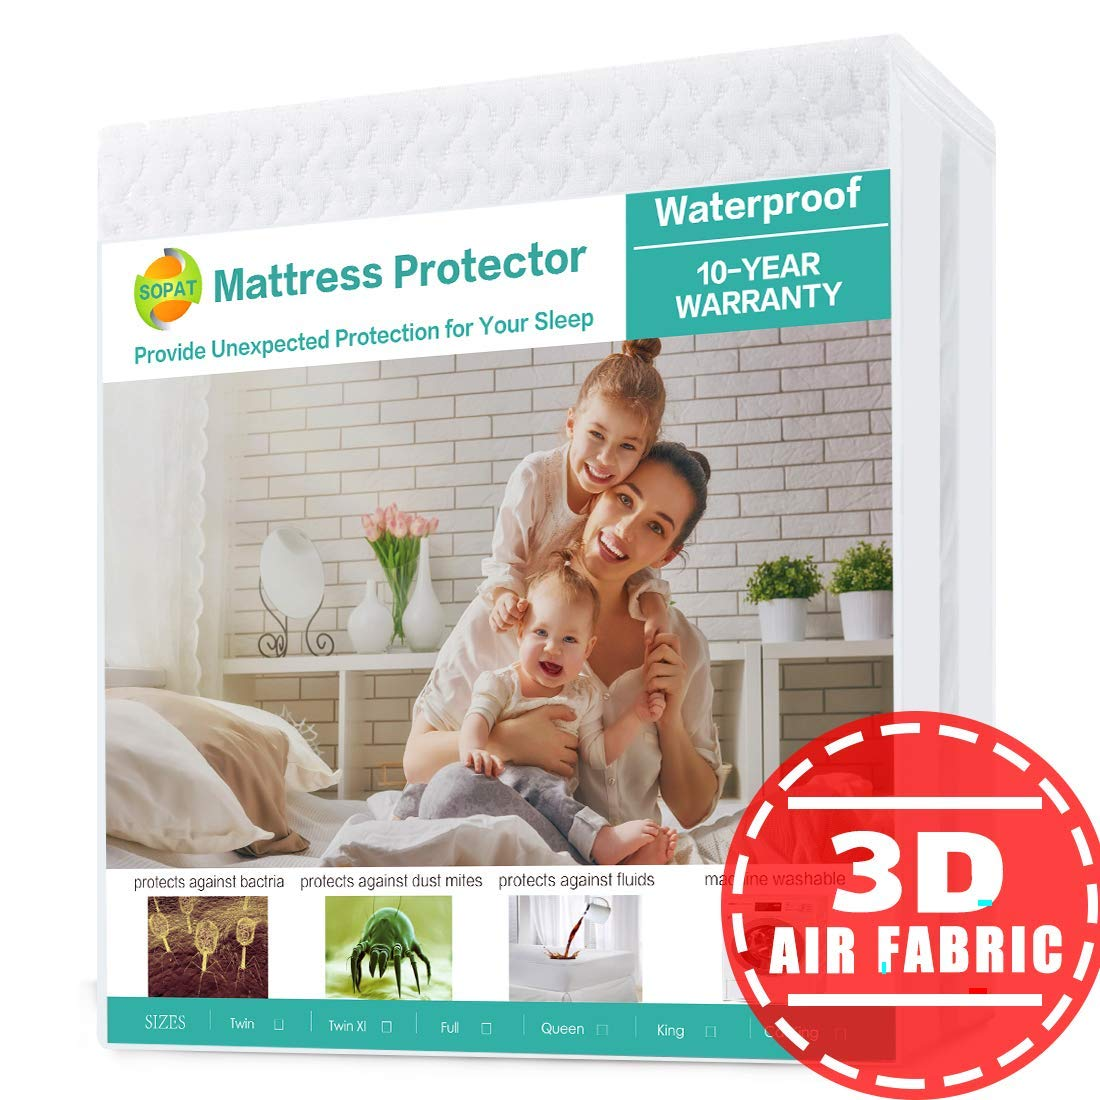 SOPAT Cal King Mattress Protector 100% Waterproof Mattress Pad Cover,3D Air Fabric,Breathable Smooth Soft Cover